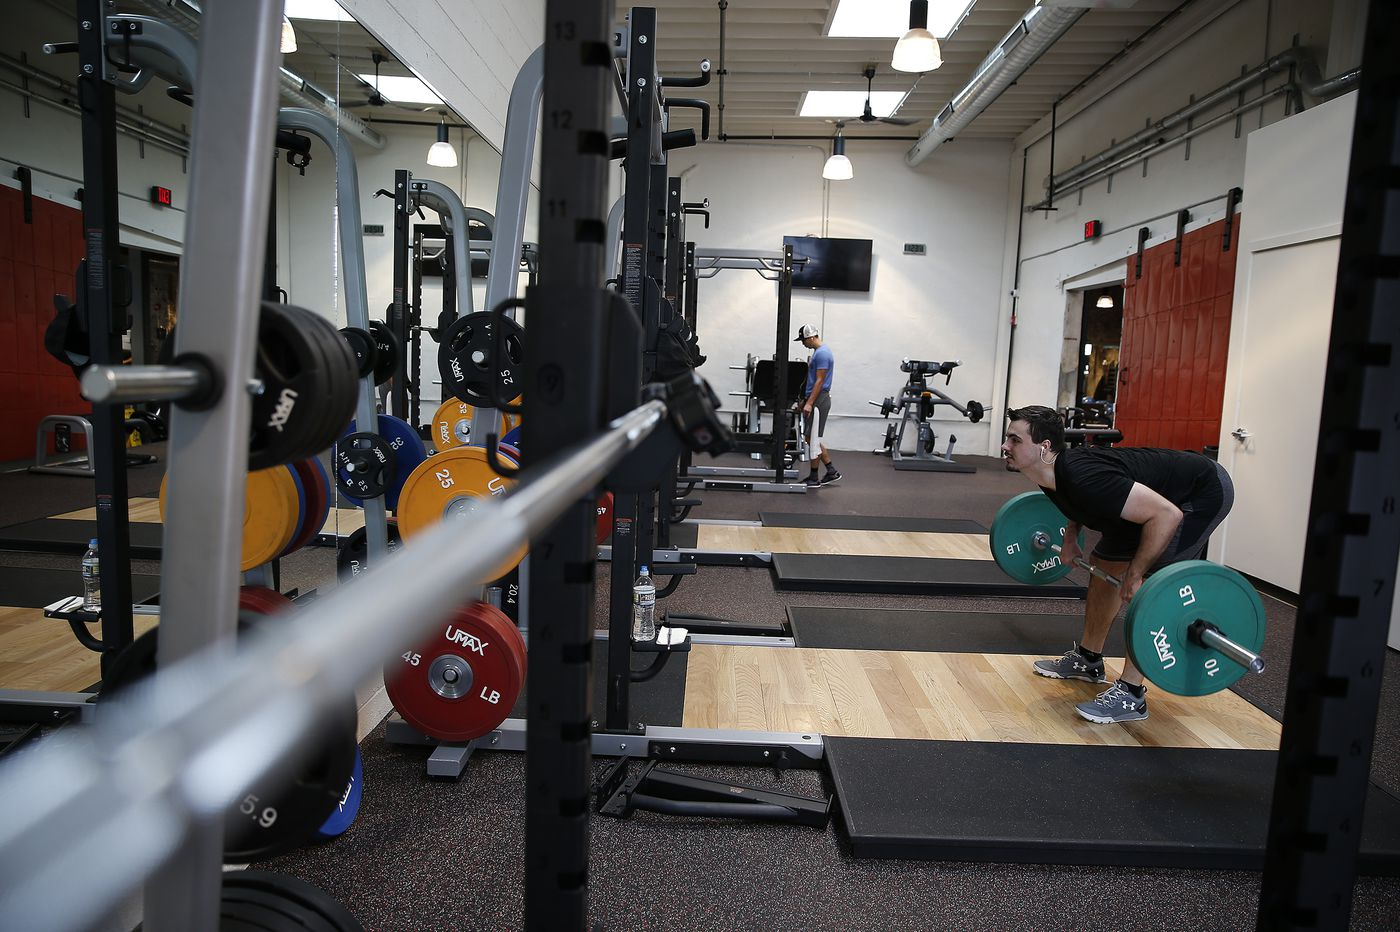 Decimated by pandemic closures and layoffs, Philadelphia fitness industry claws to stay afloat